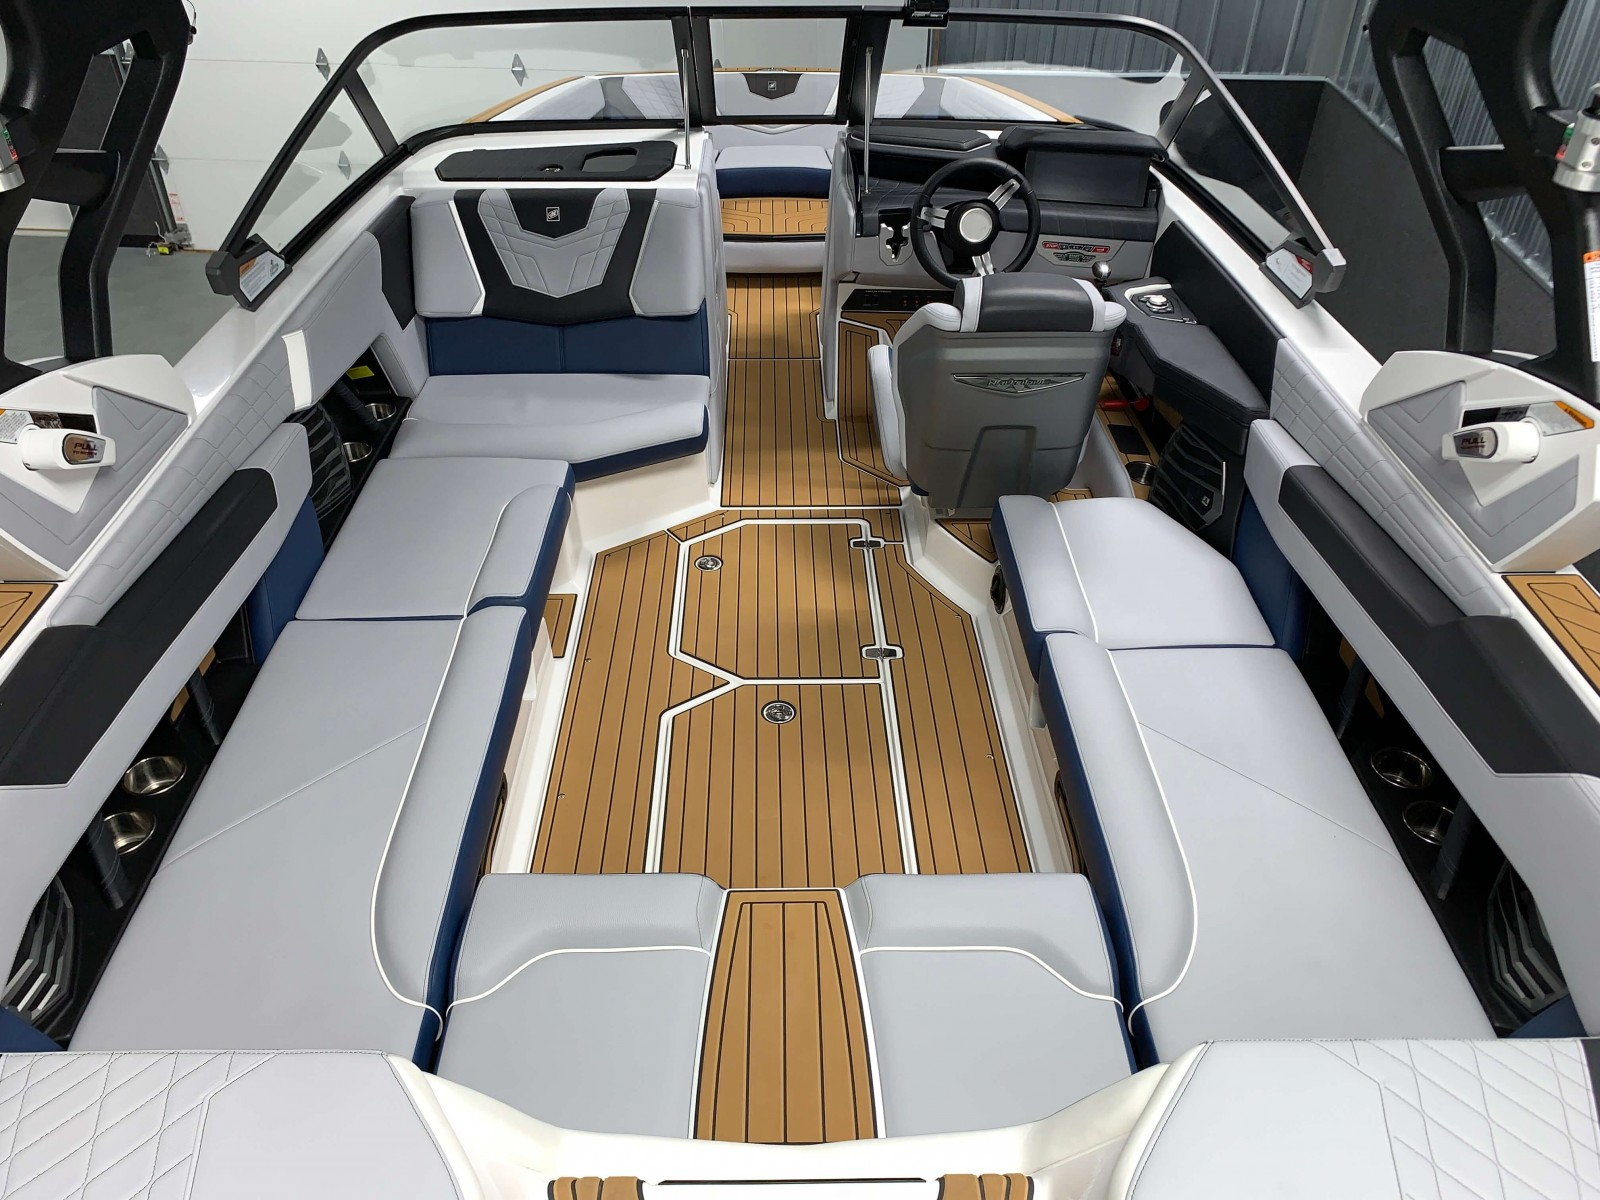 Interior Seating of the 2021 Nautique G23 Wake Boat